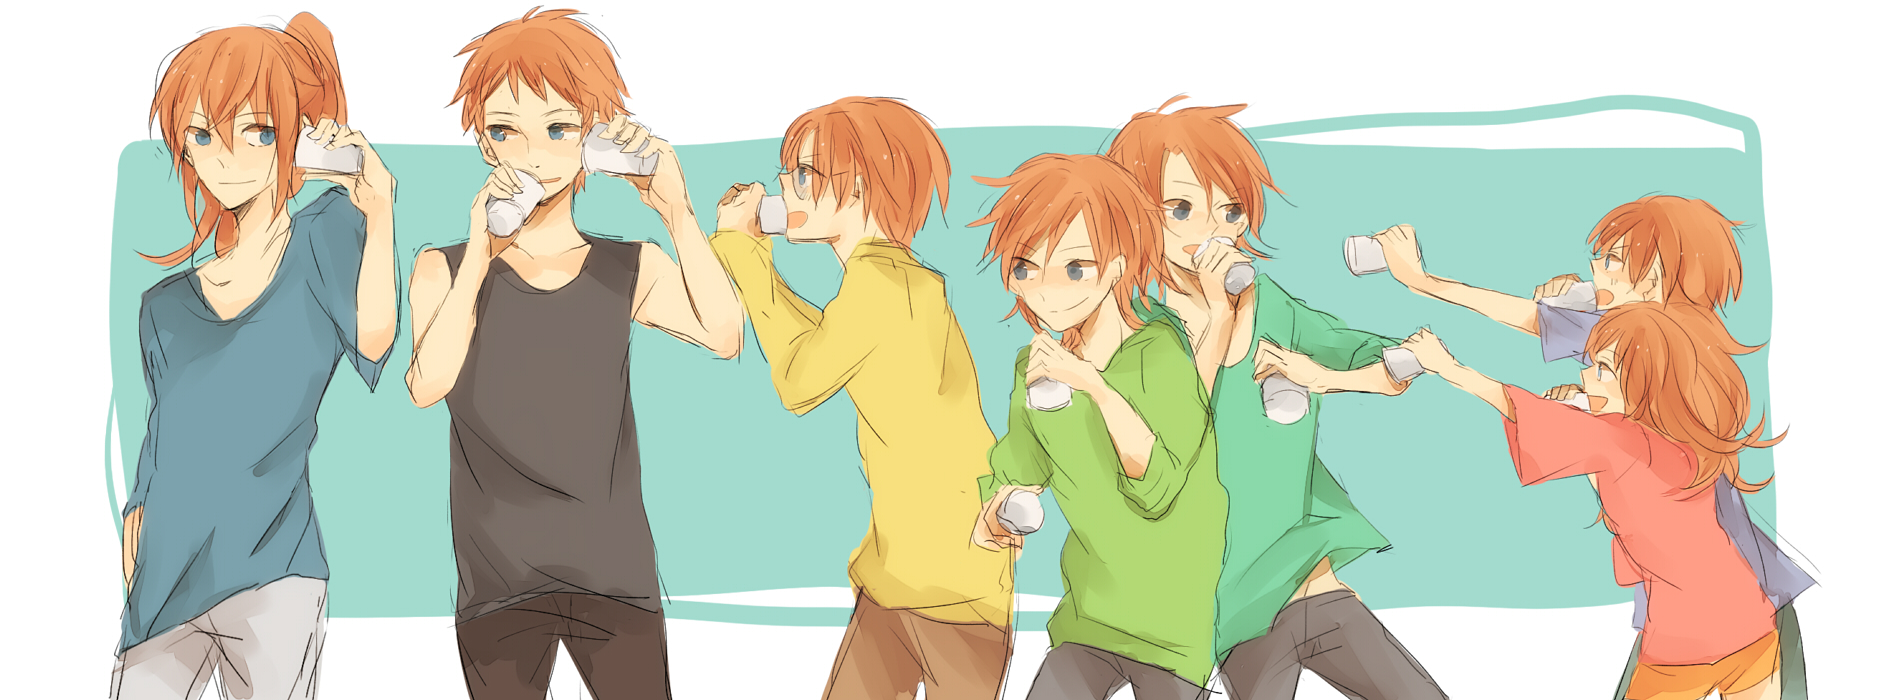 Weasley Family - Harry Potter - Zerochan Anime Image Board Weasley Family Anime